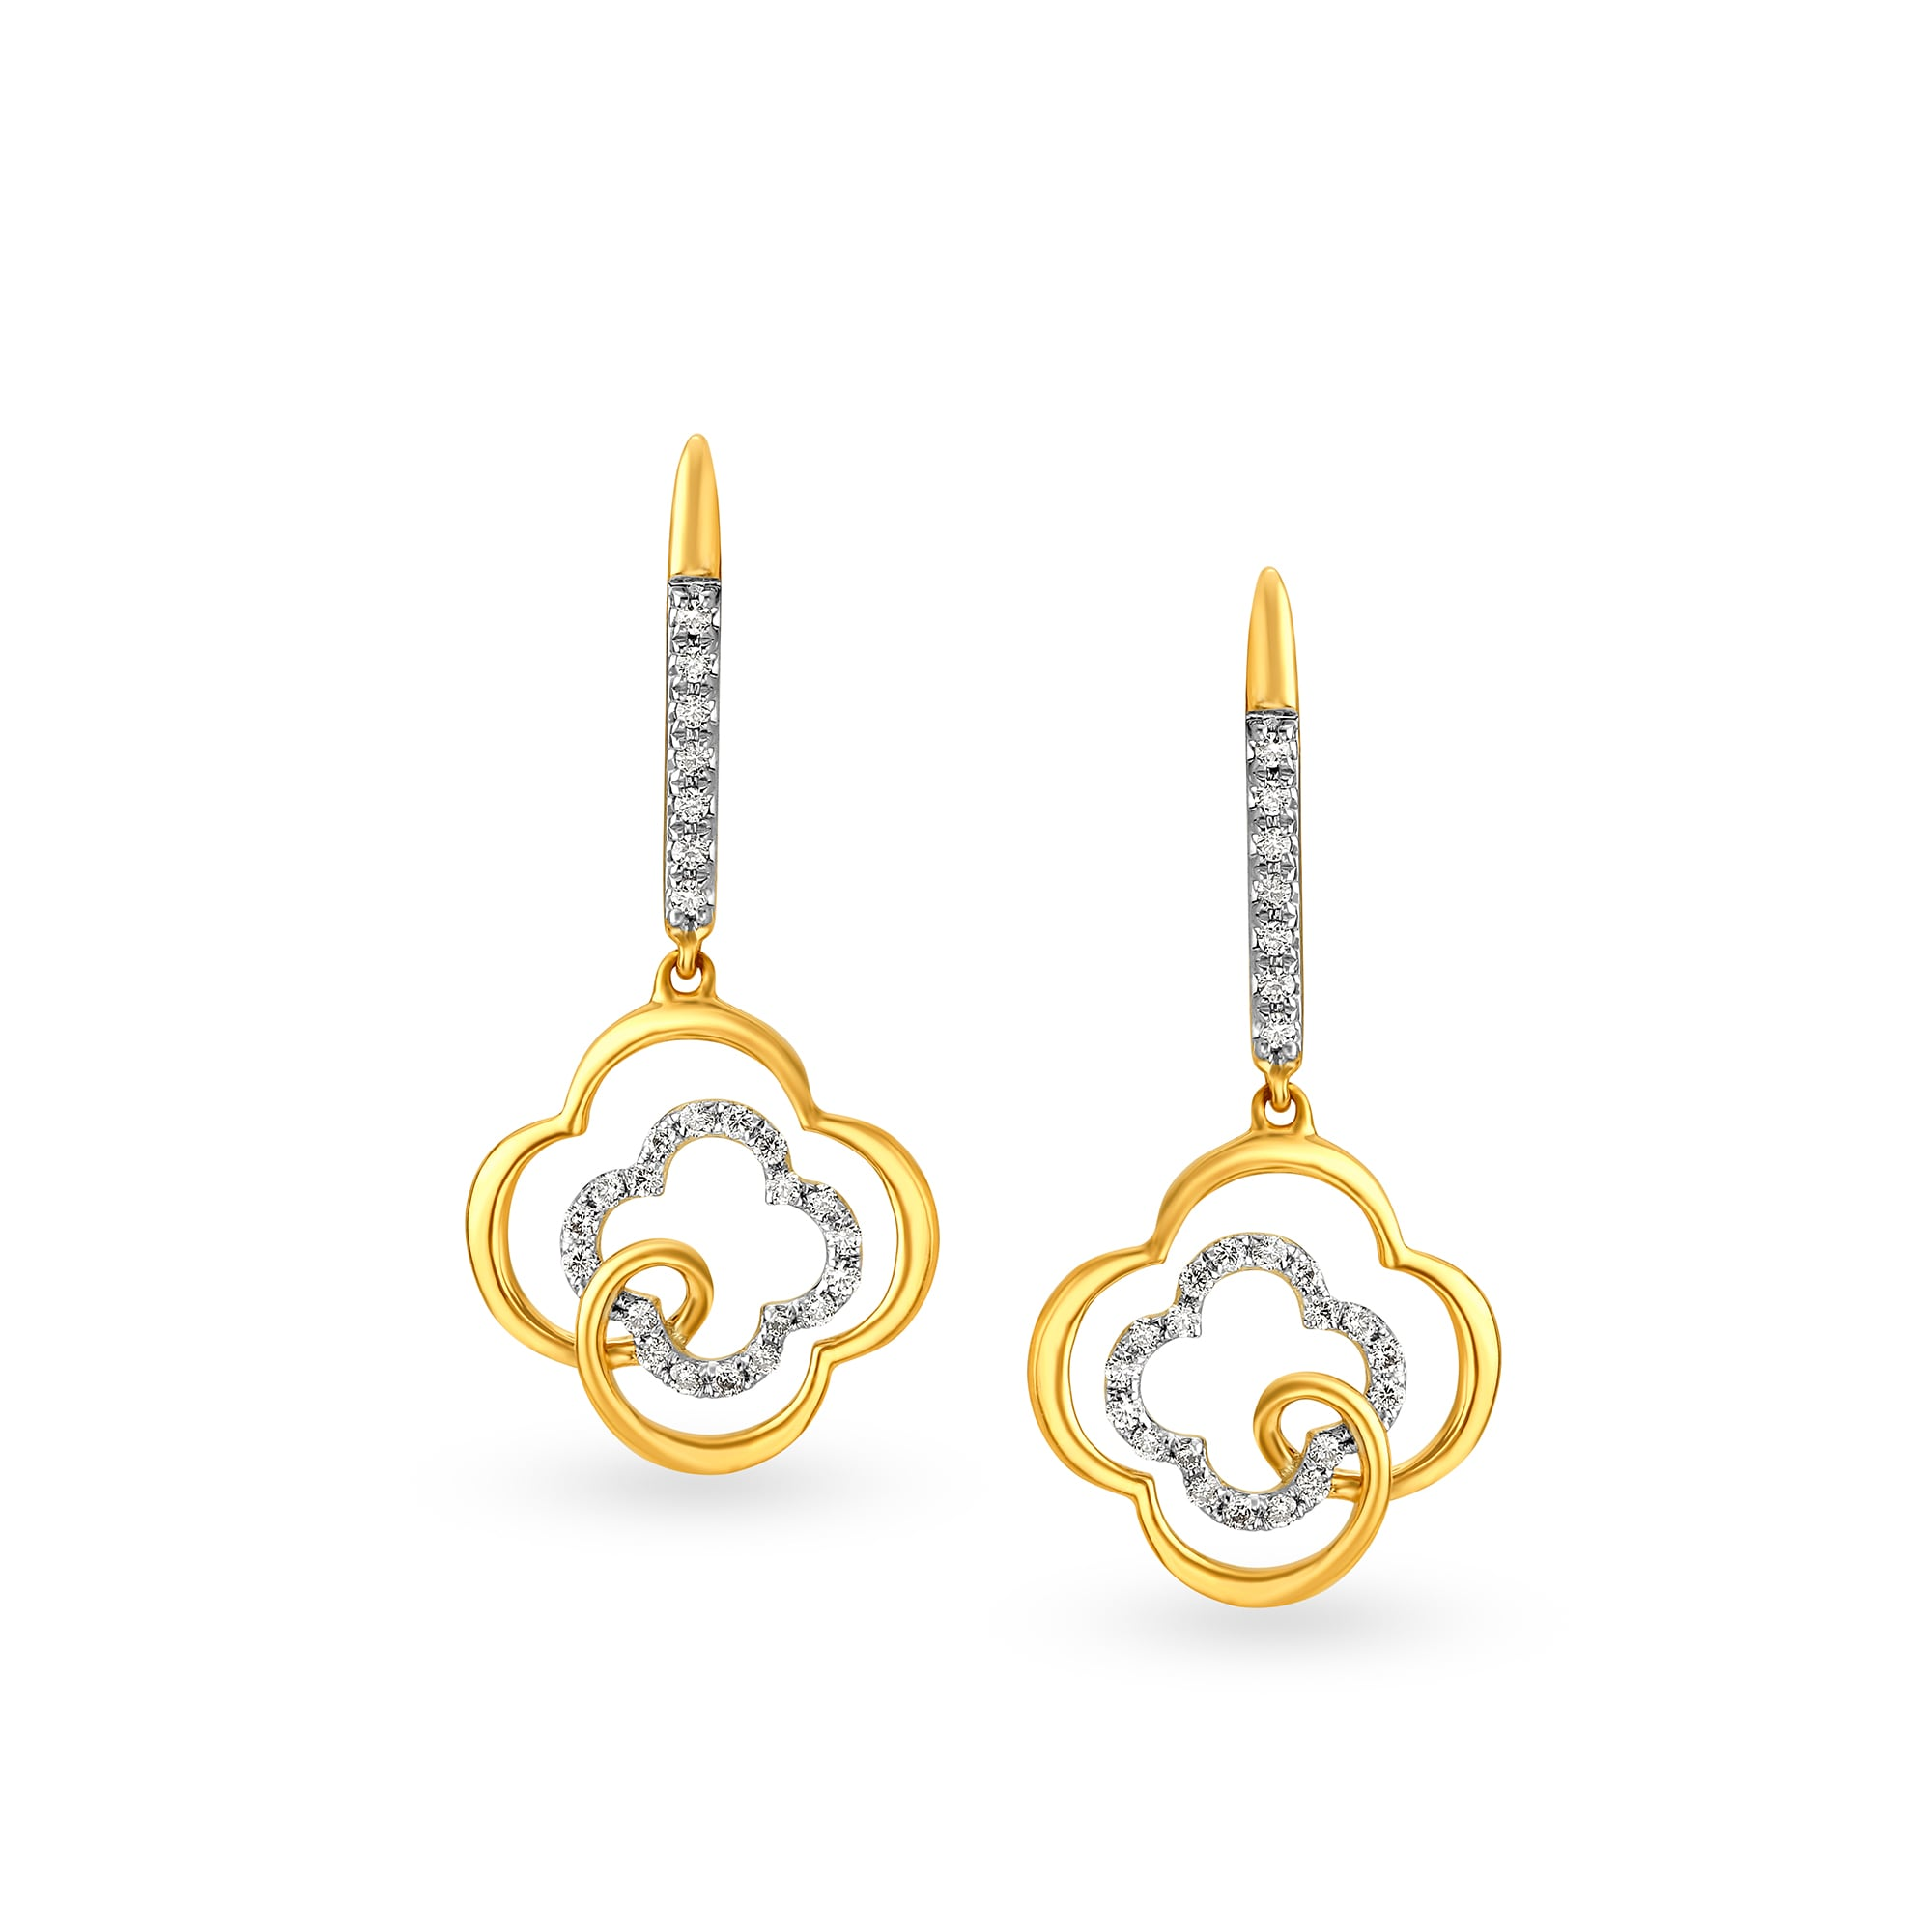 cfd394cbfa6fa Mia by Tanishq 14KT Yellow Gold Diamond Drop Earrings with Floral Design